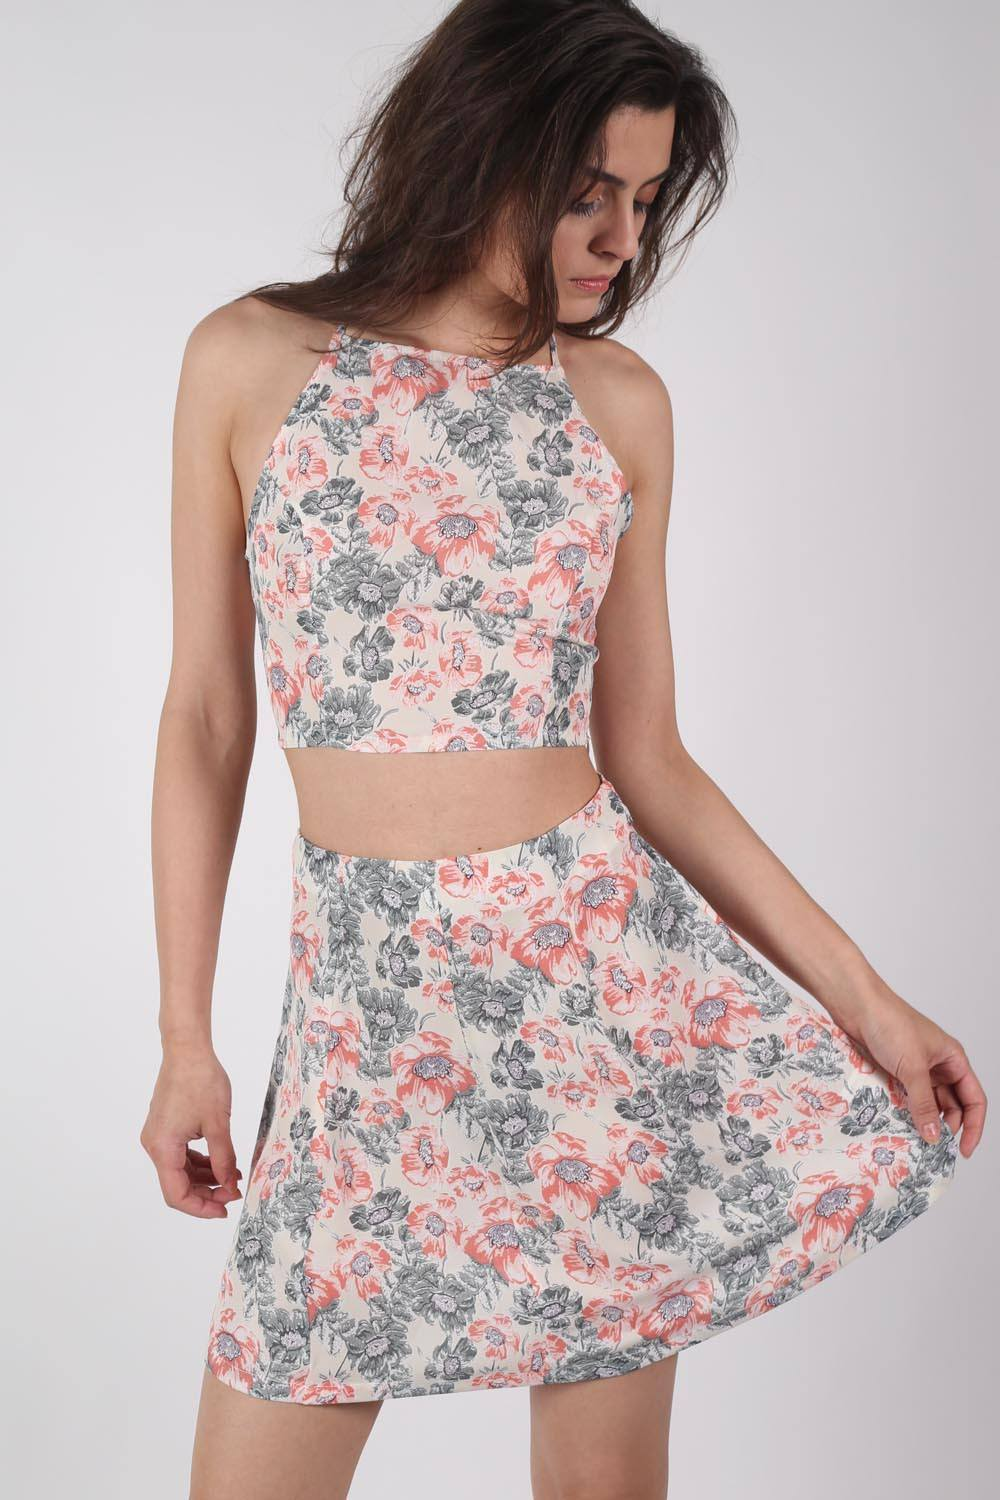 Floral Print A-Line Mini Skirt in Pale Pink 0